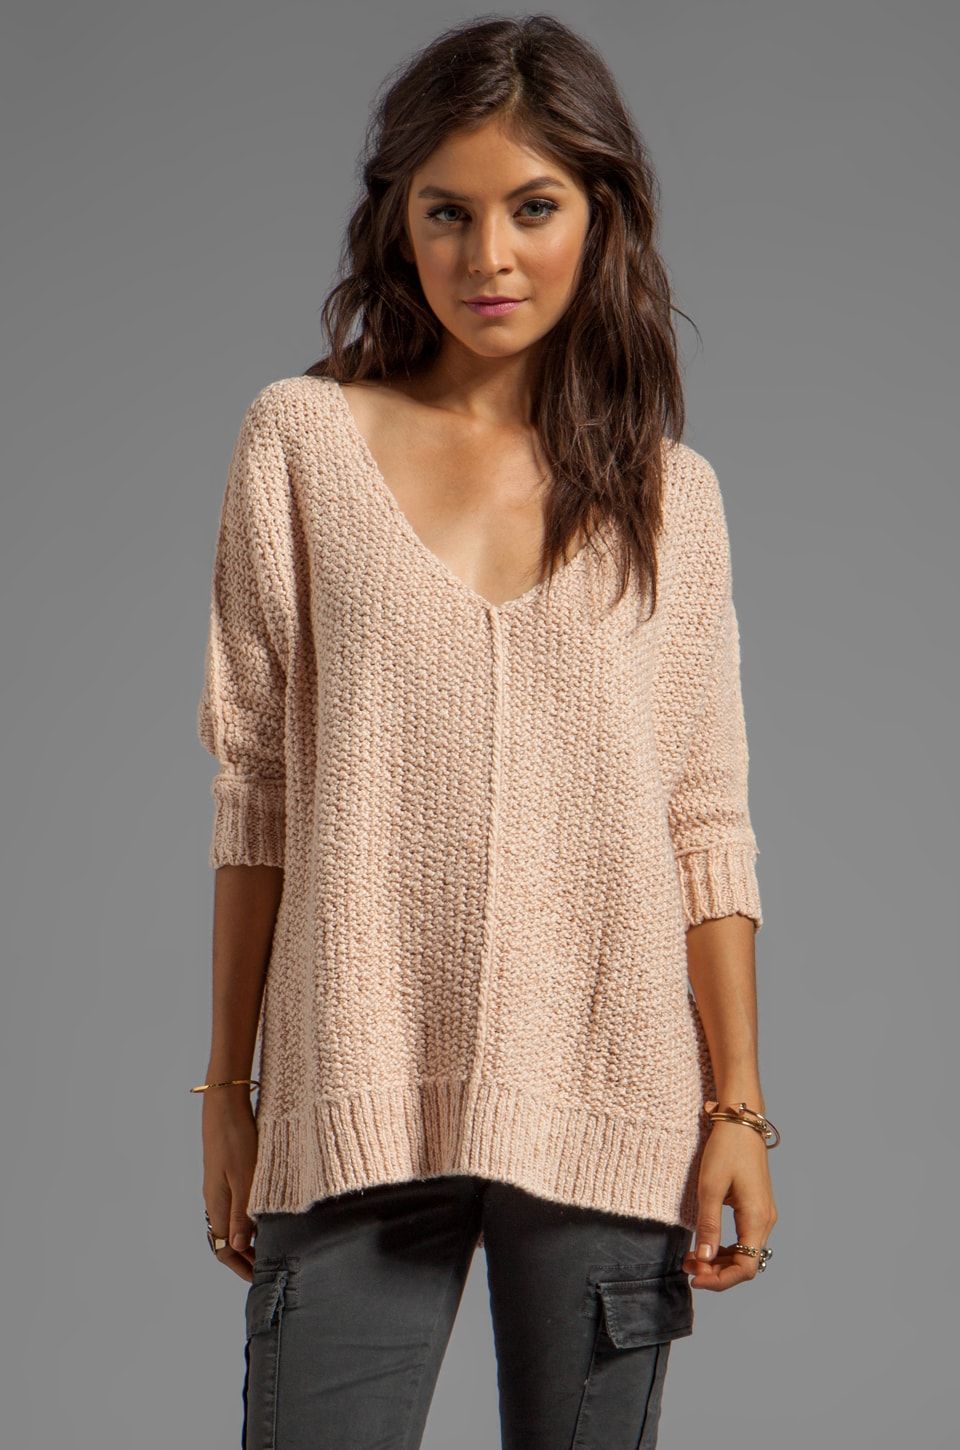 Free People Cozy Cat Pullover in Champagne